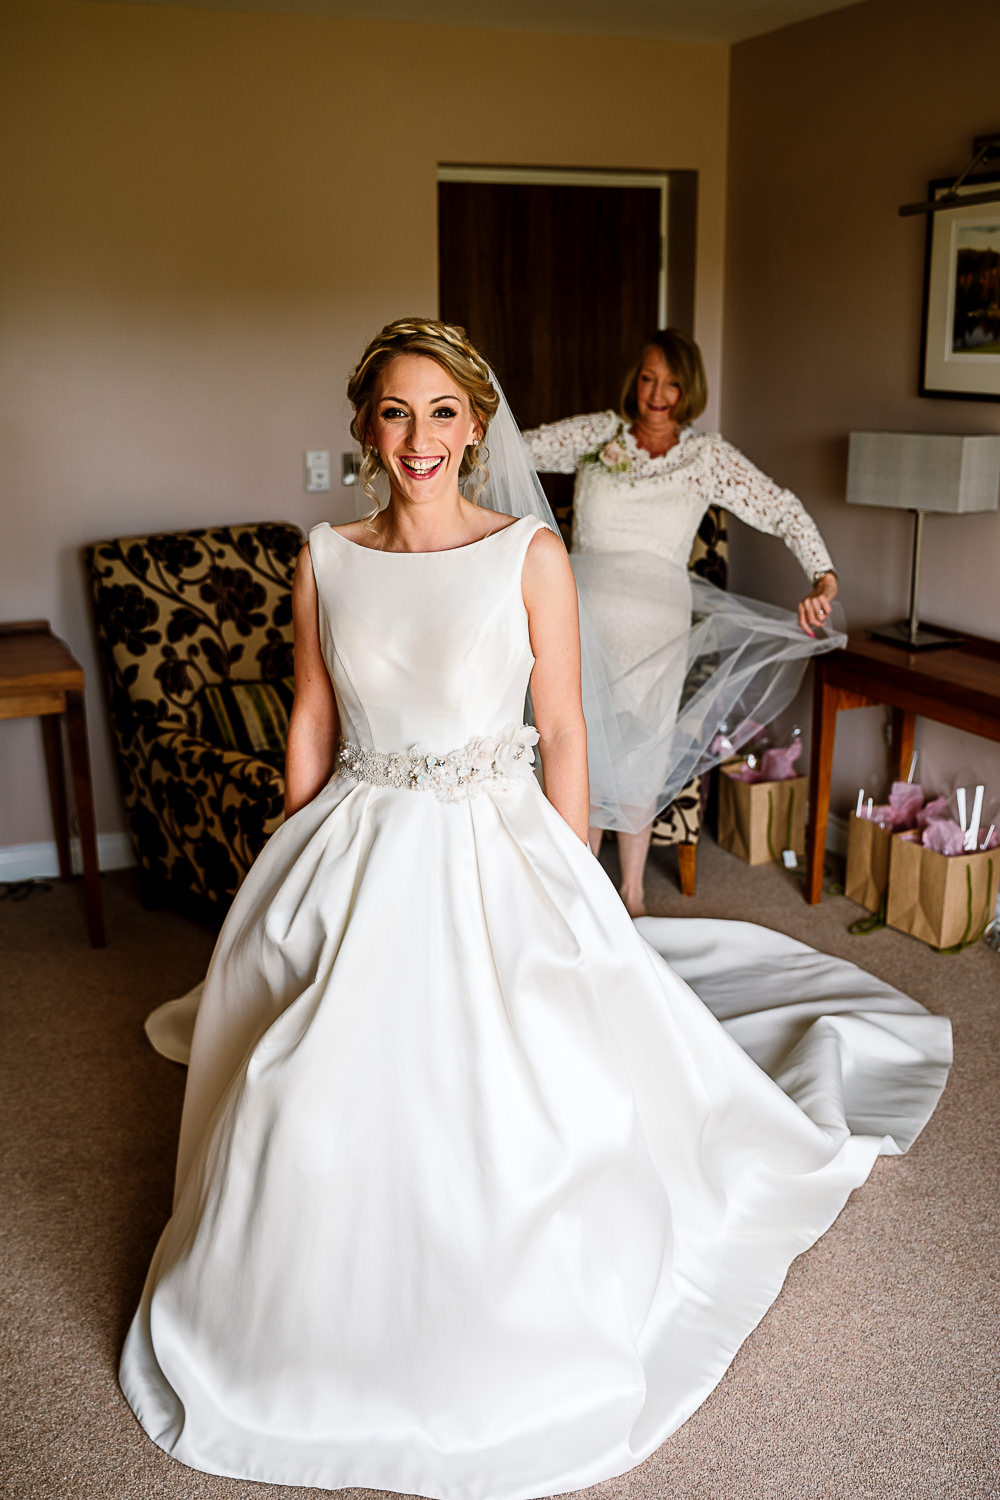 Bride Bridal Dress Gown Belt Pockets Skirt Full Train Coniston Hotel Wedding Hayley Baxter Photography